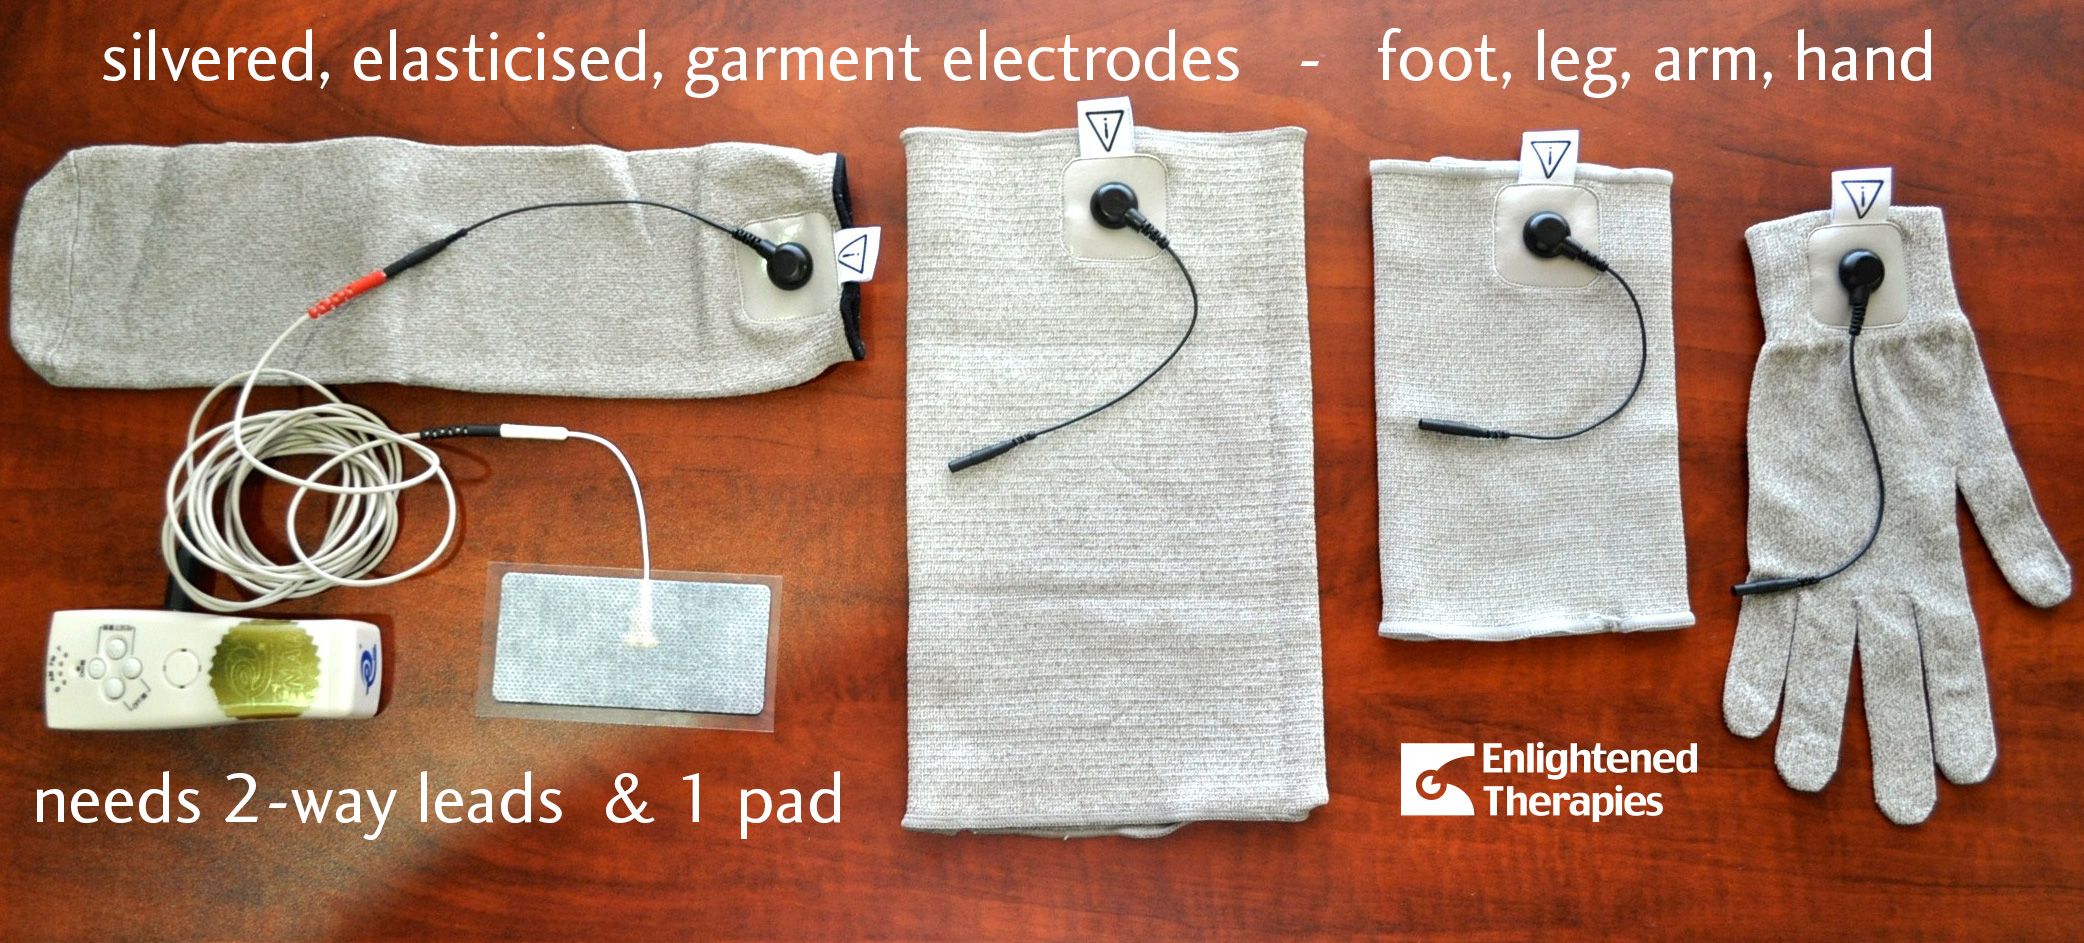 Elasticised silvered garment electrodes – hand, foot, arm, leg